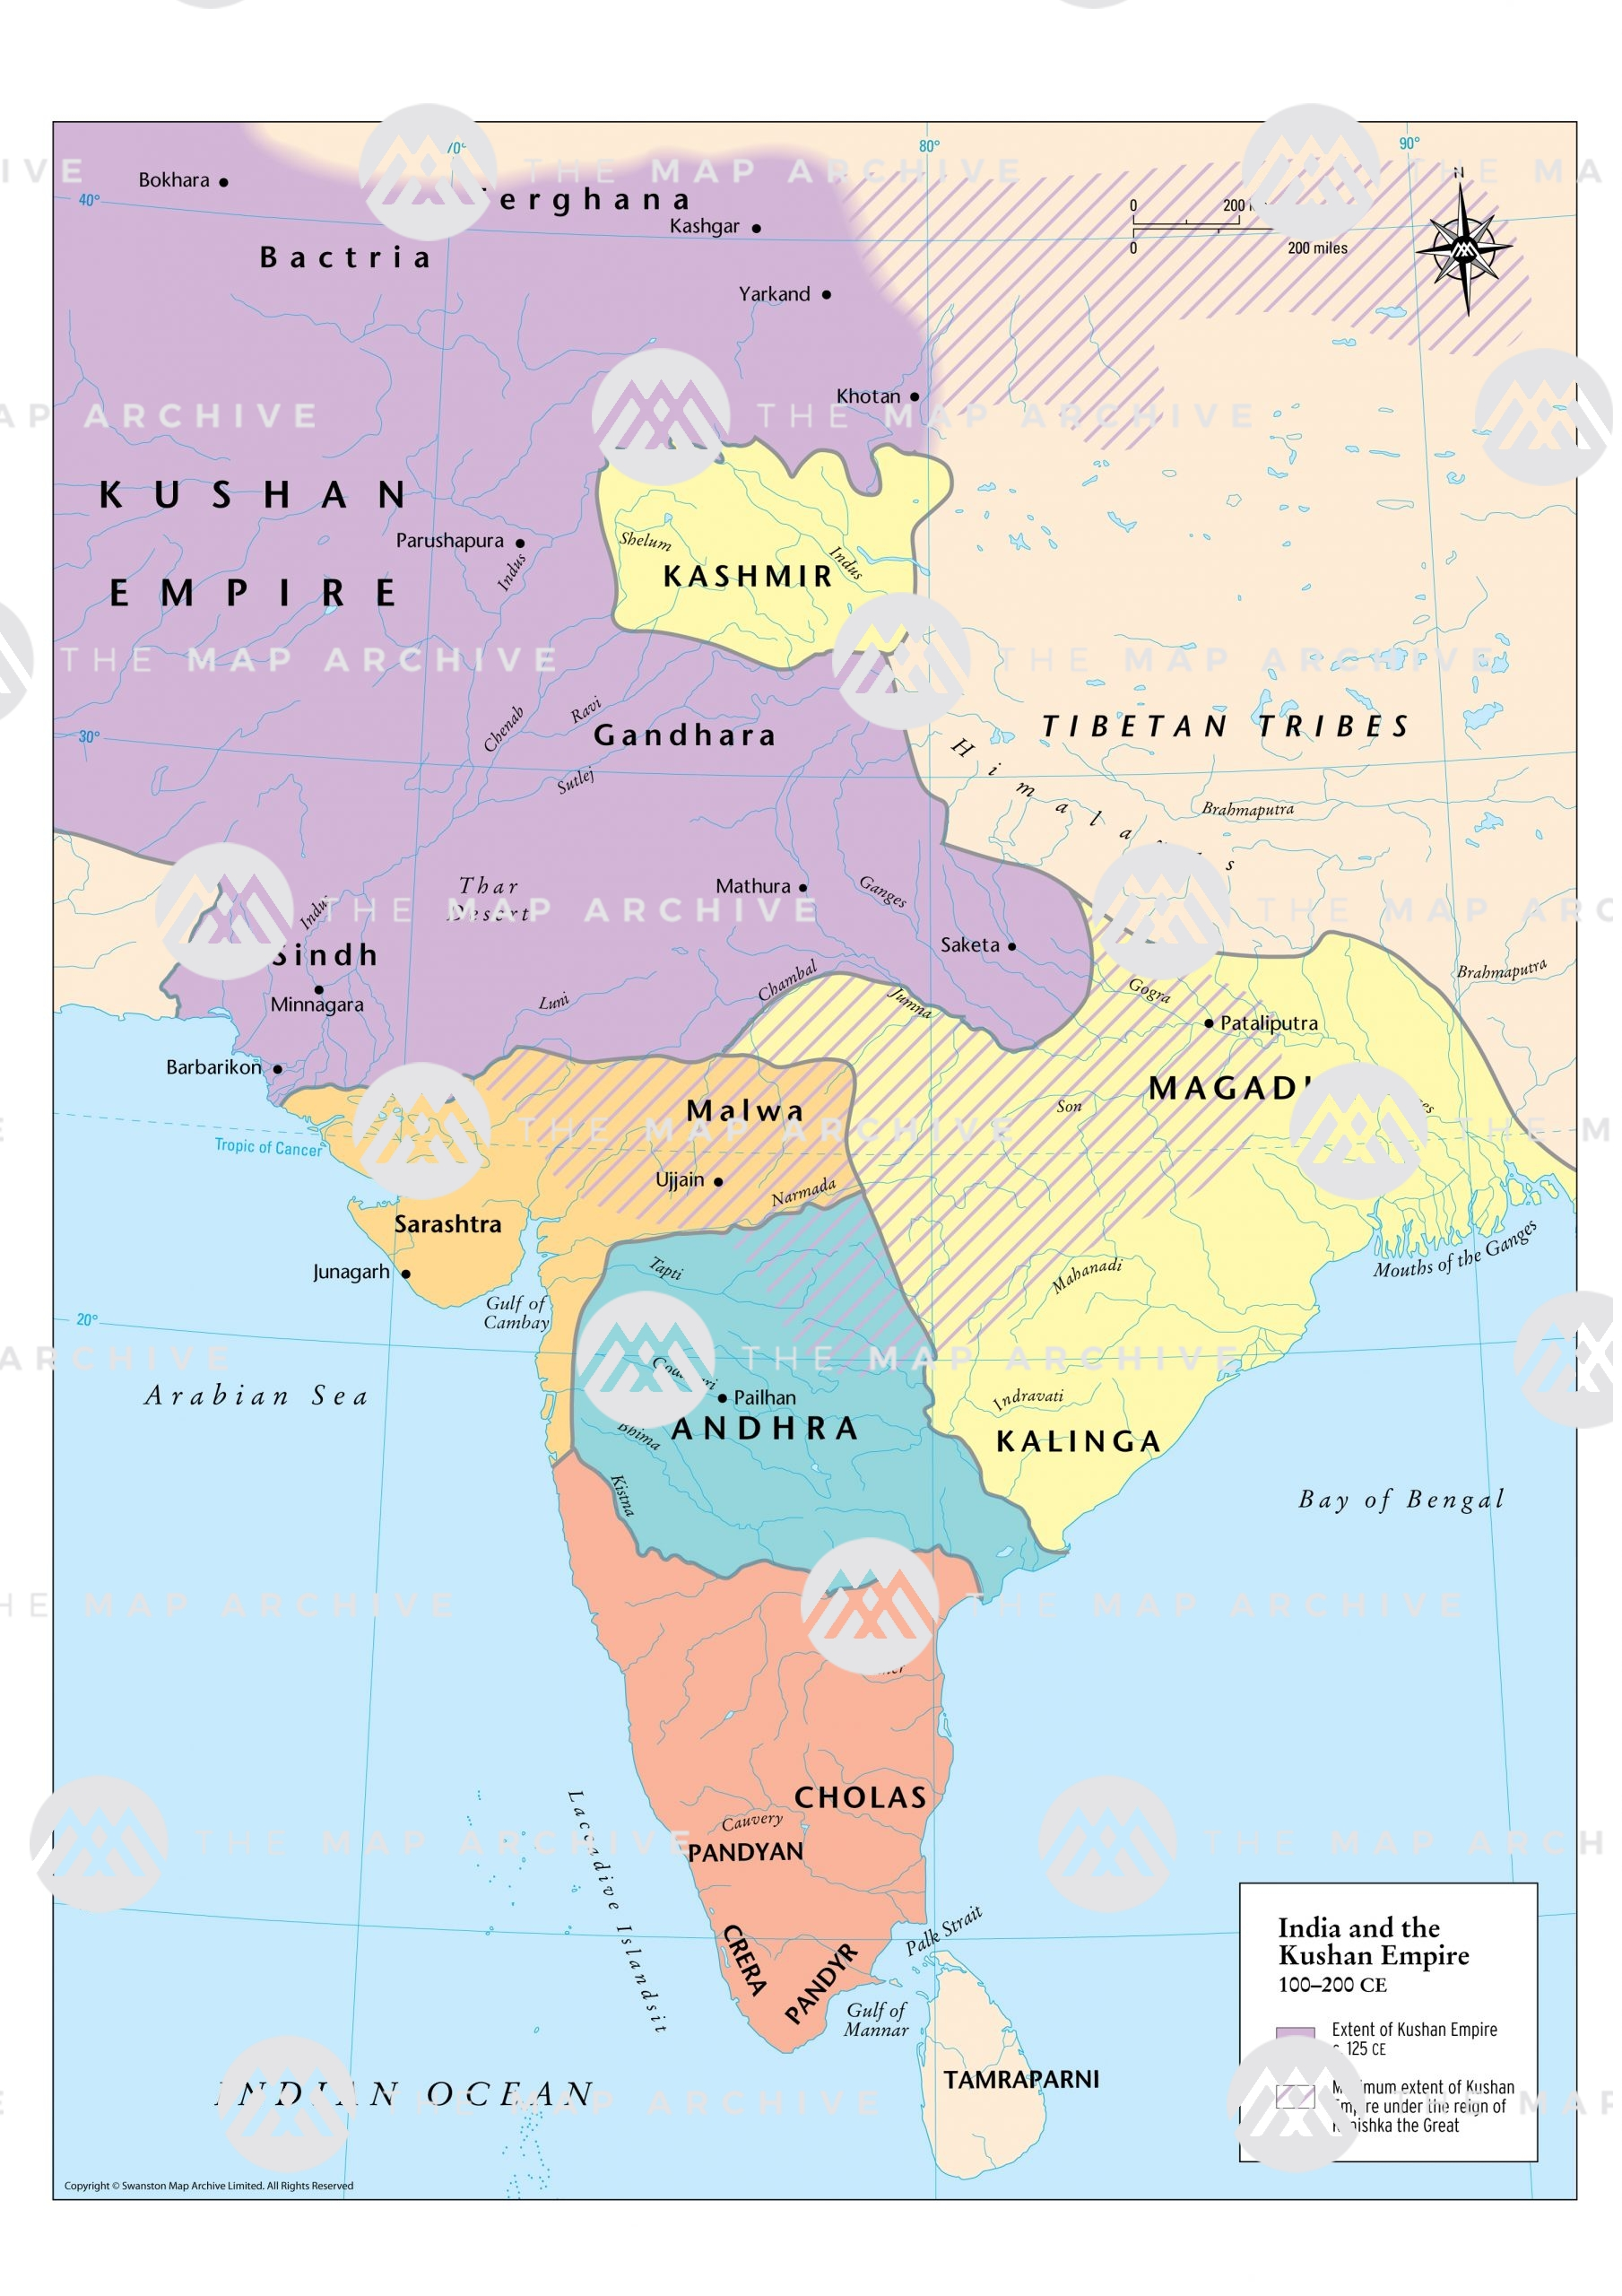 India and the Kushan Empire 100-200 CE